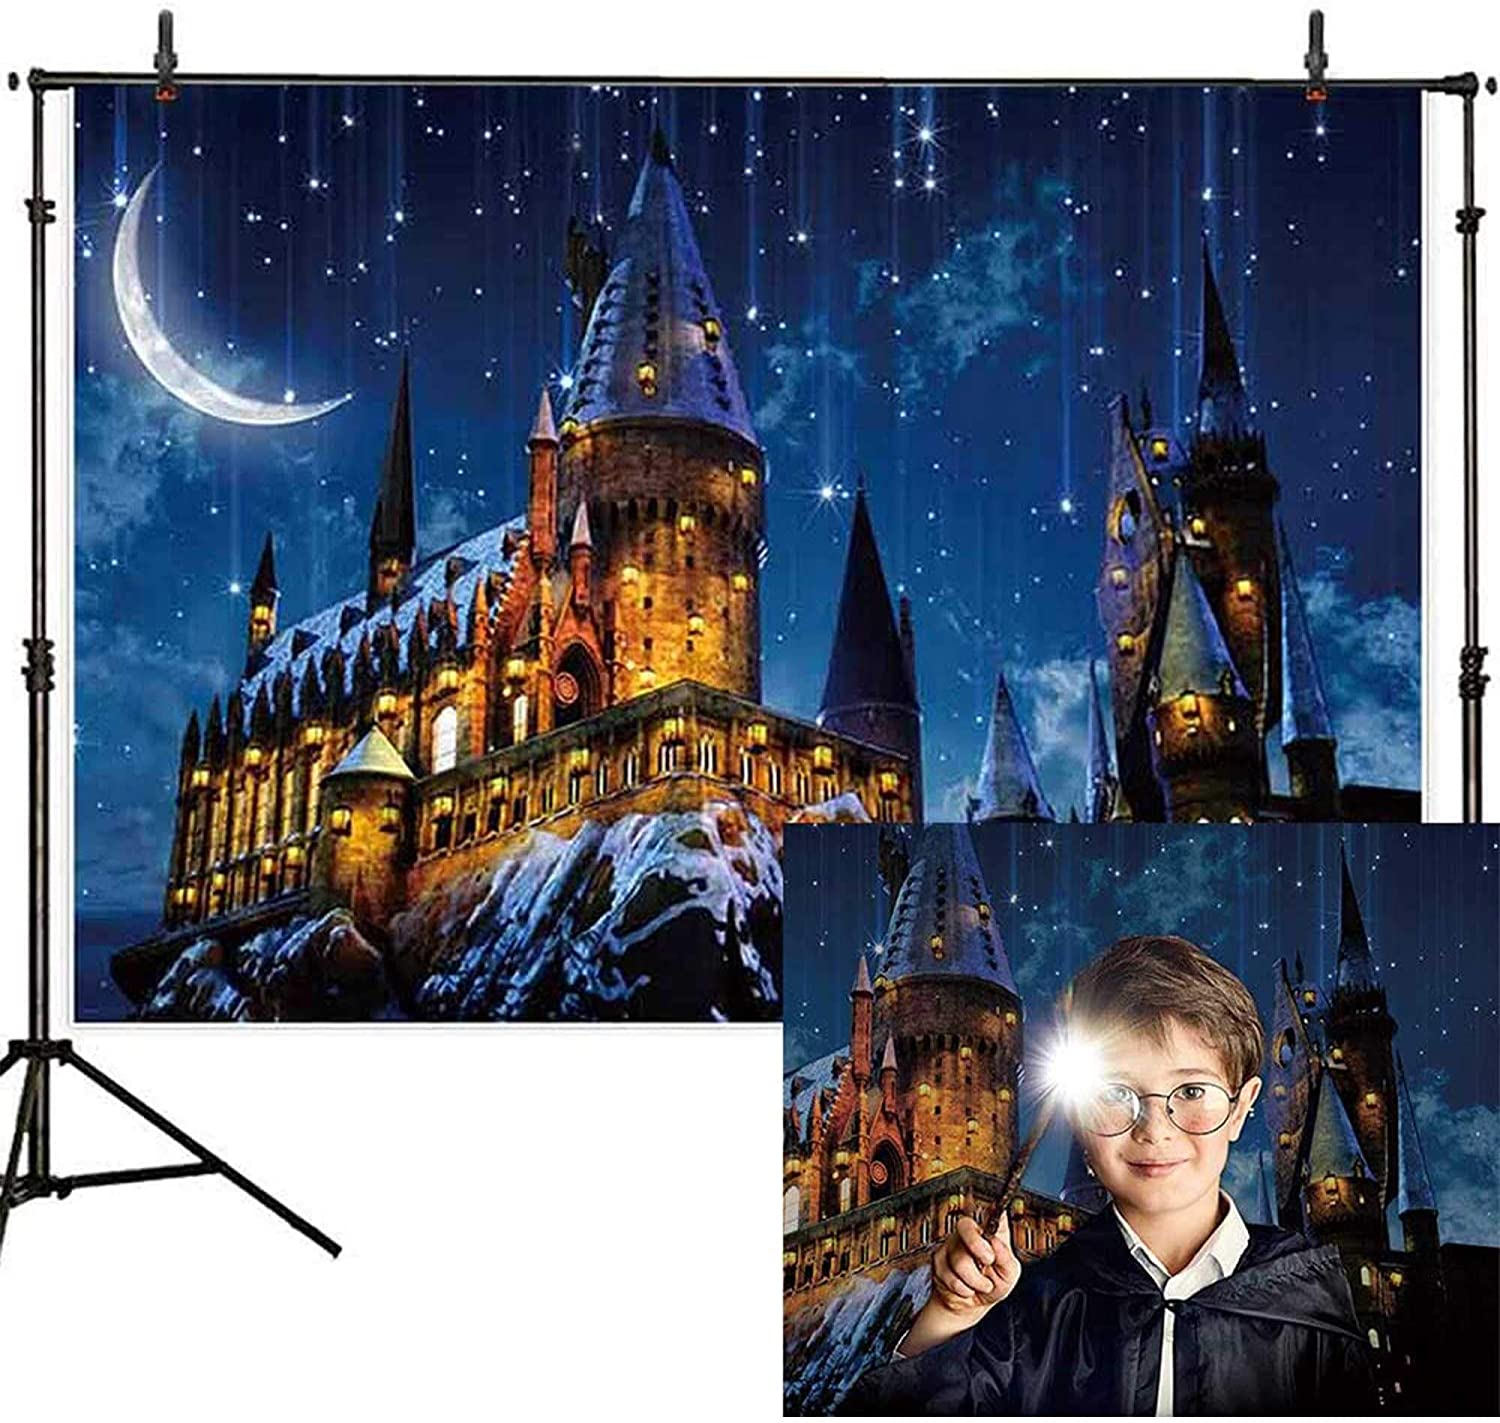 Allenjoy 7x5ft Magic Castle Witch Wizard School Backdrop Photography Halloween Night Moon Background Sorcerer Party Banner Decors for Child Kid Portrait Photo Booth Prop